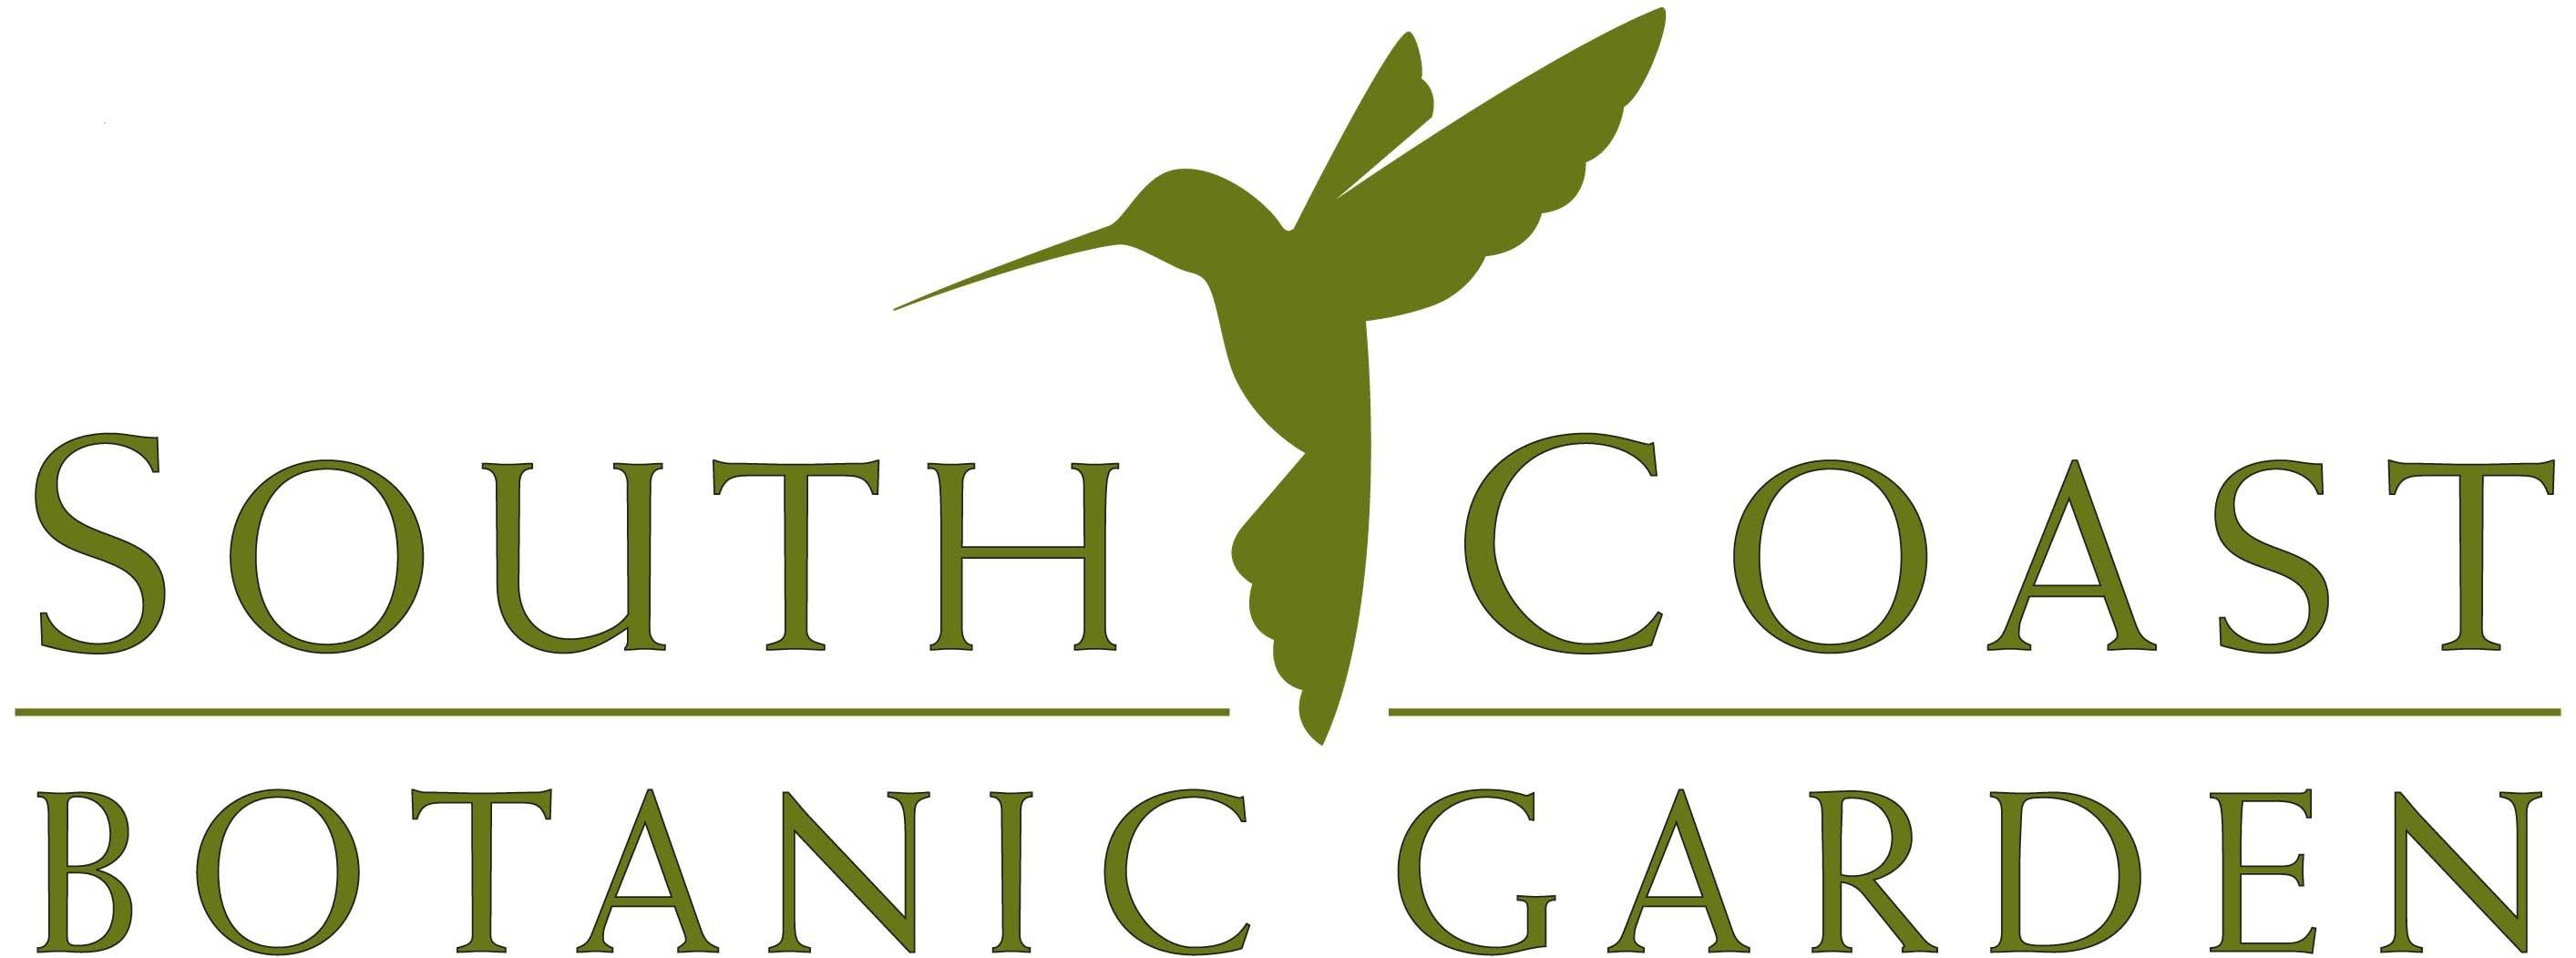 logo for south coast botanic garden with a hummingbird in flight between the text